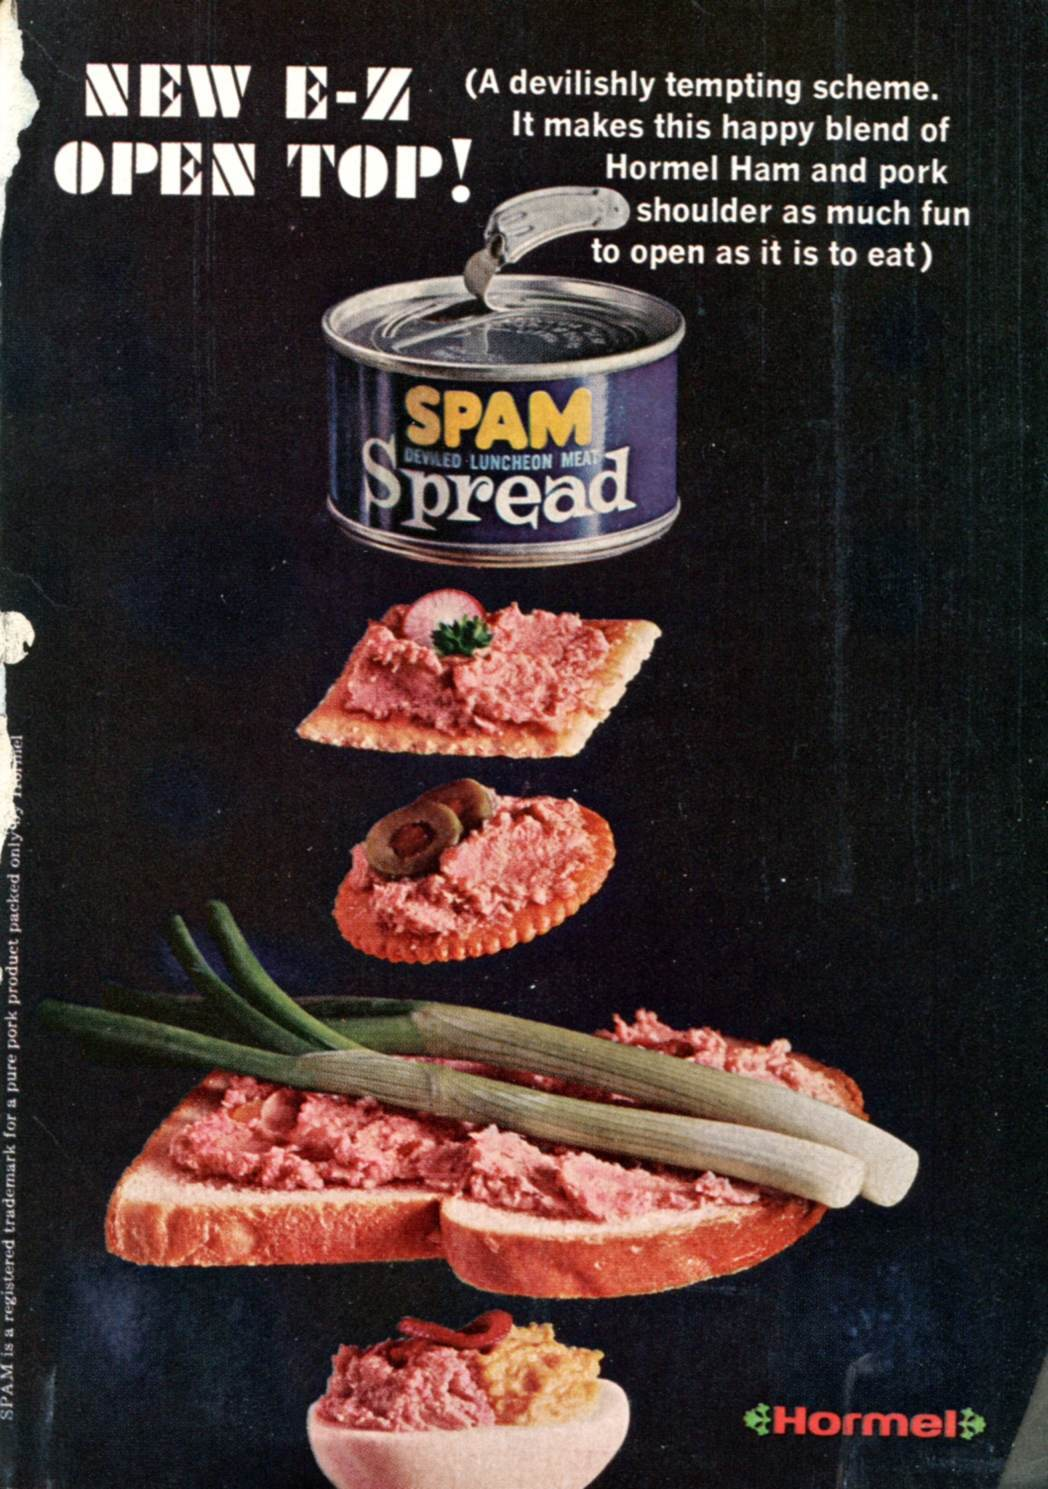 1966 Spam Spread Advertisement Readers Digest January 1966